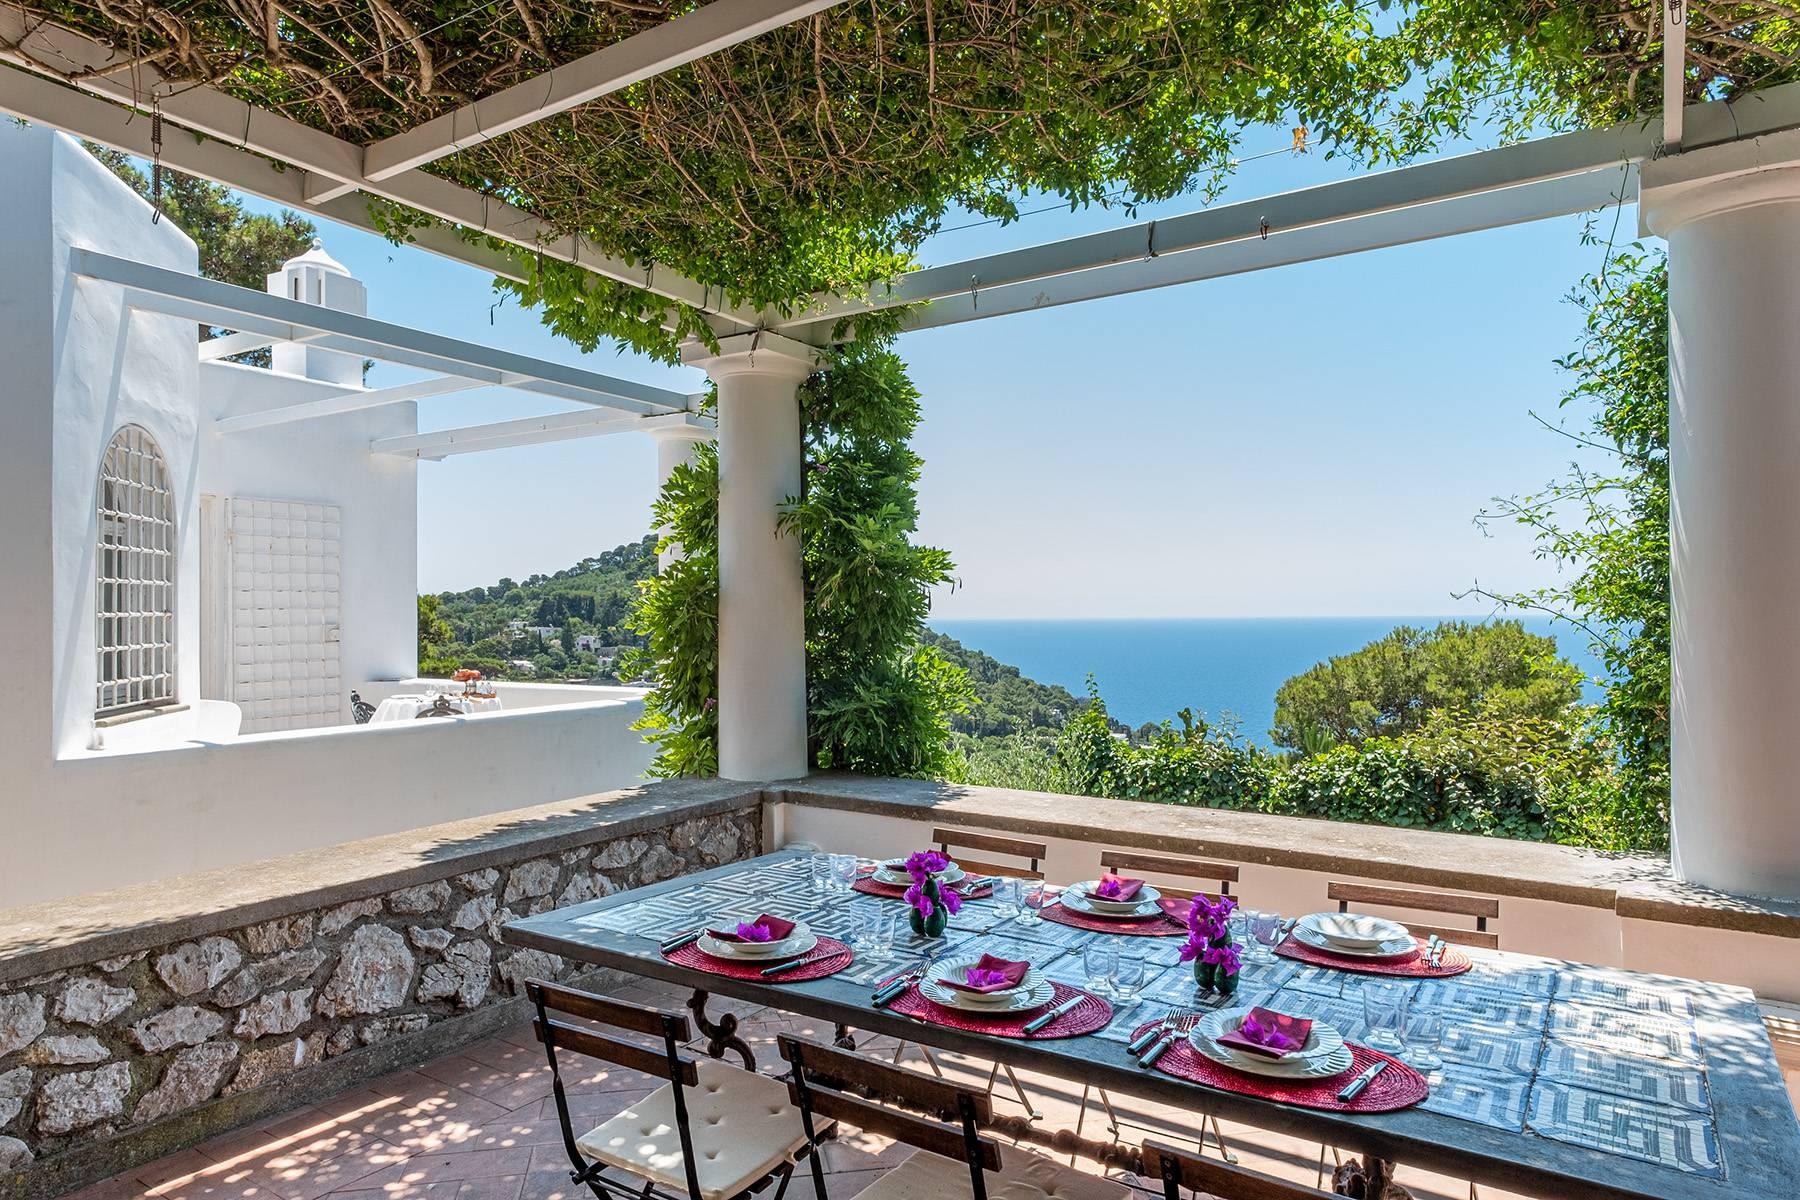 Stunning villa with swimming pool overlooking Capri and the sea - 2